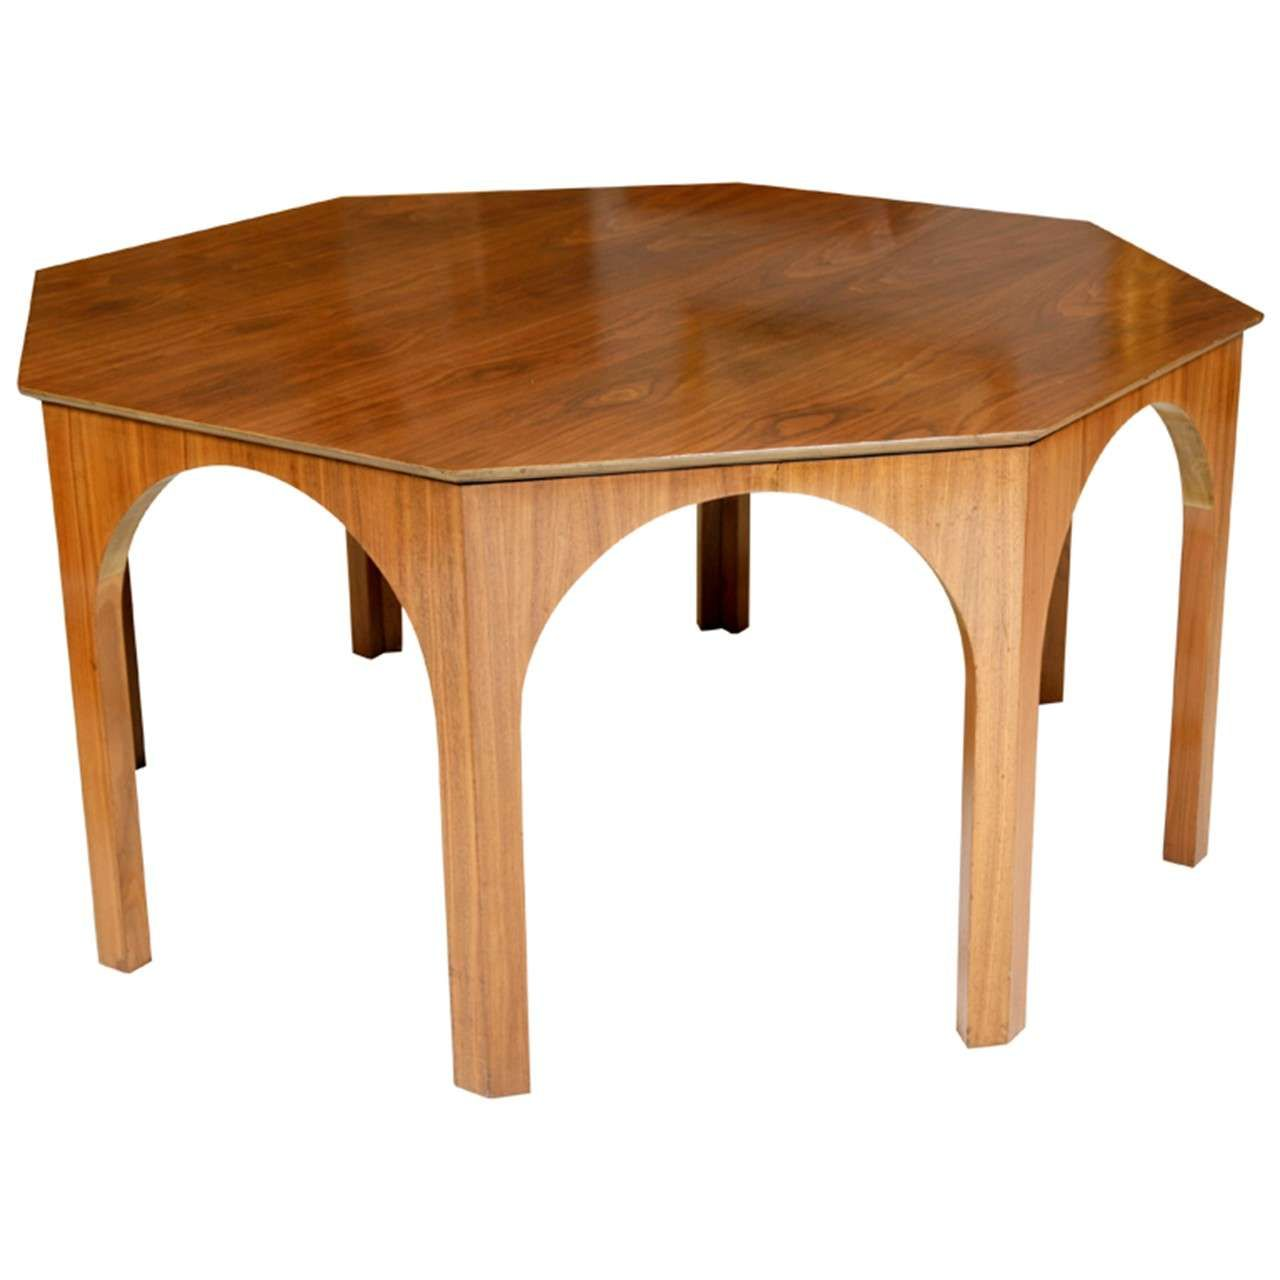 Octagonal Dining Centre Table By T H Robsjohn Gibbings 1stdibs Com Vintage Dining Room Table Coffee Tables For